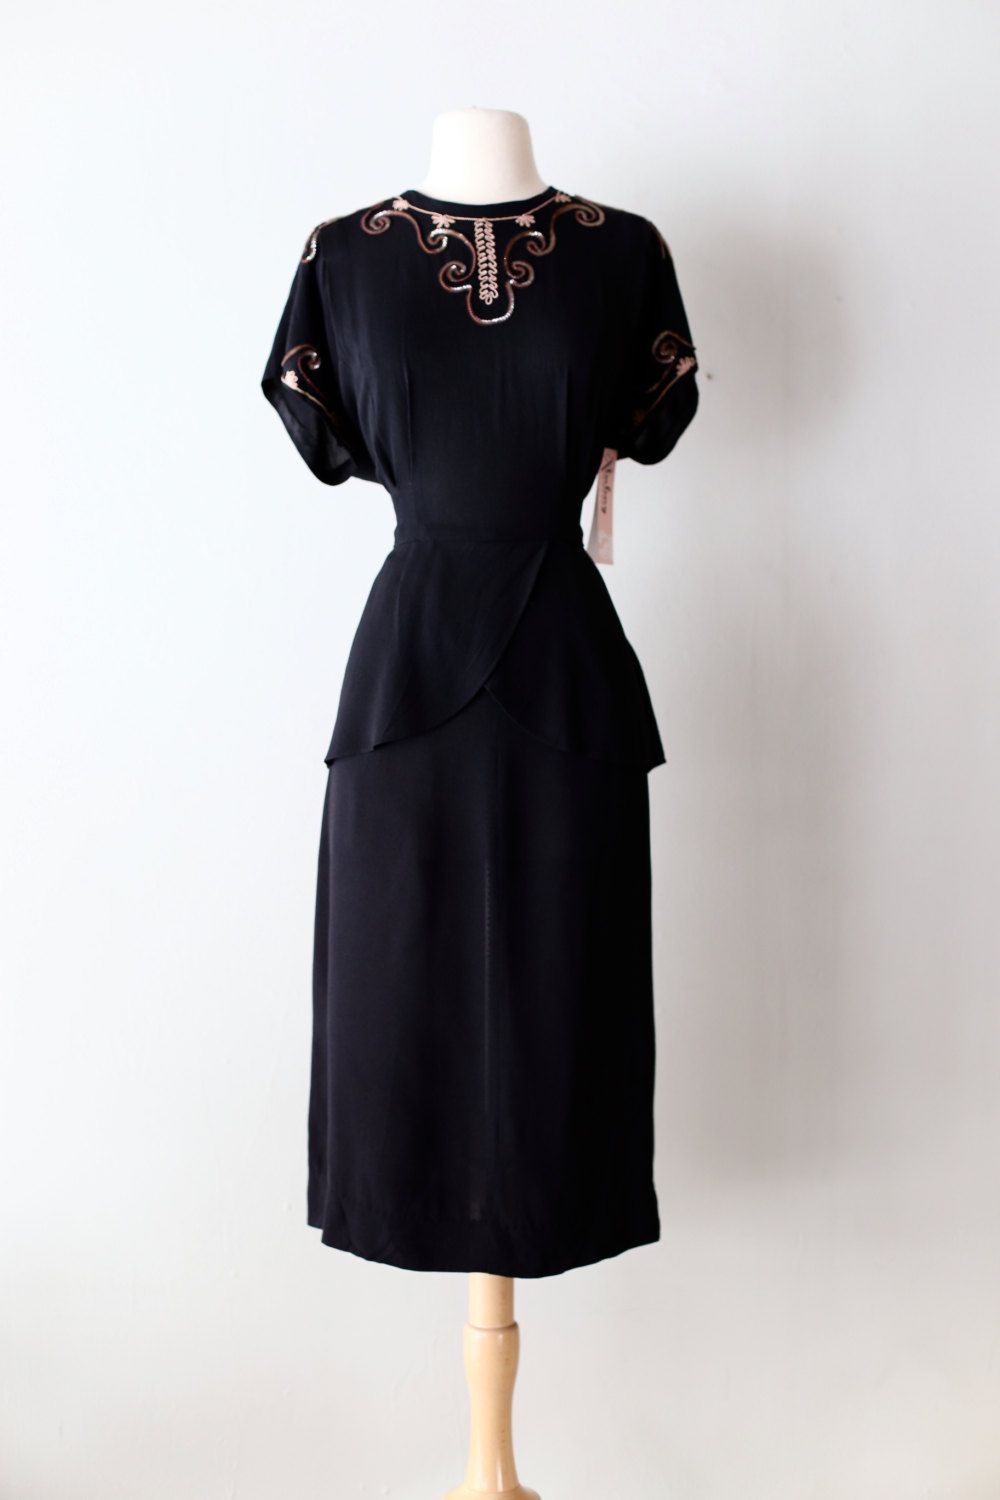 Vintage s rayon cocktail dress s black rayon dress with